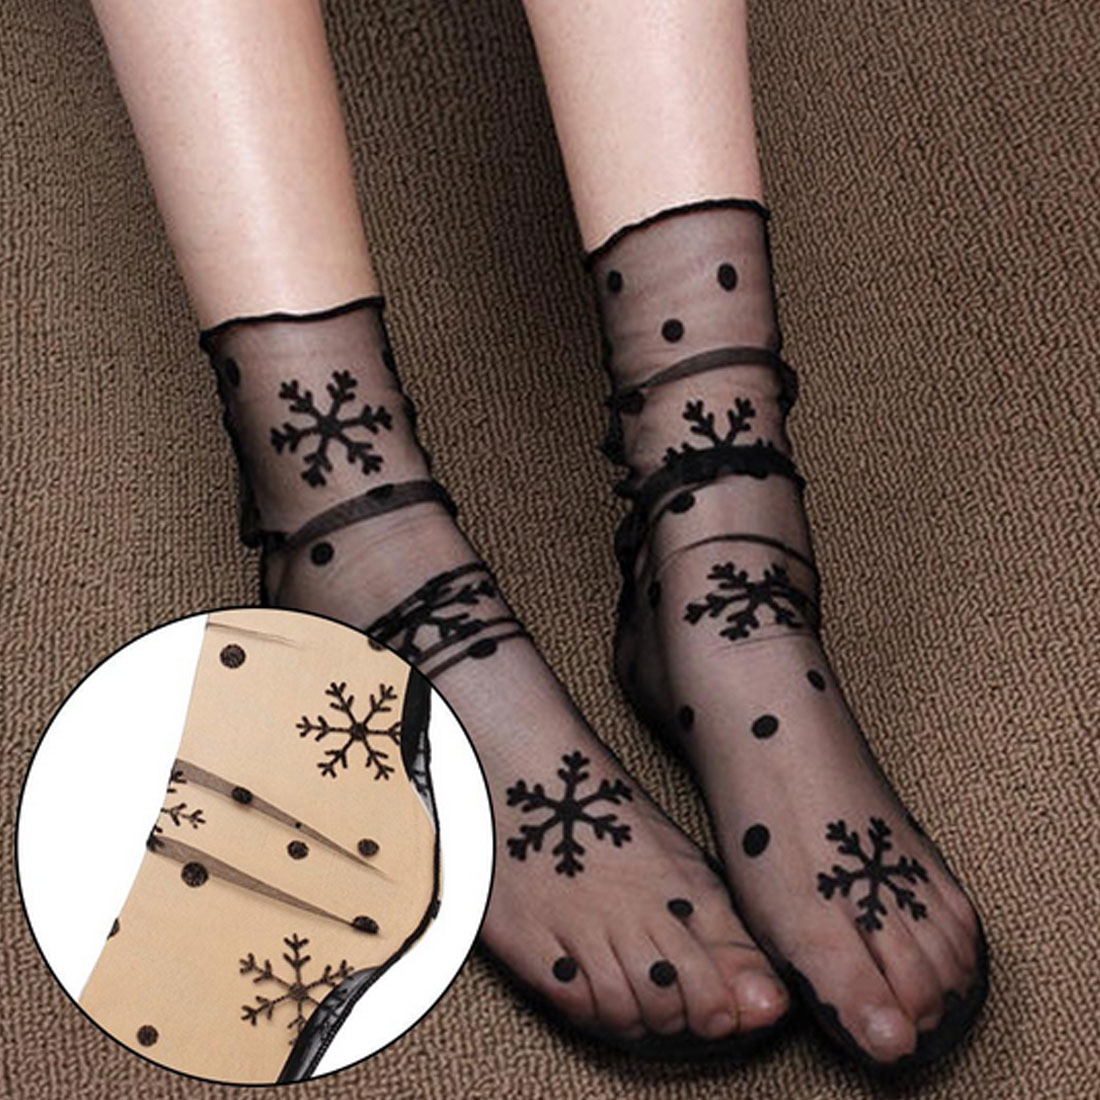 Women's Harajuku Breathable Transparent Mesh Small Polka Dots Socks Lady Net Yarn Fishnet Dots Socks Female Hosiery Sox